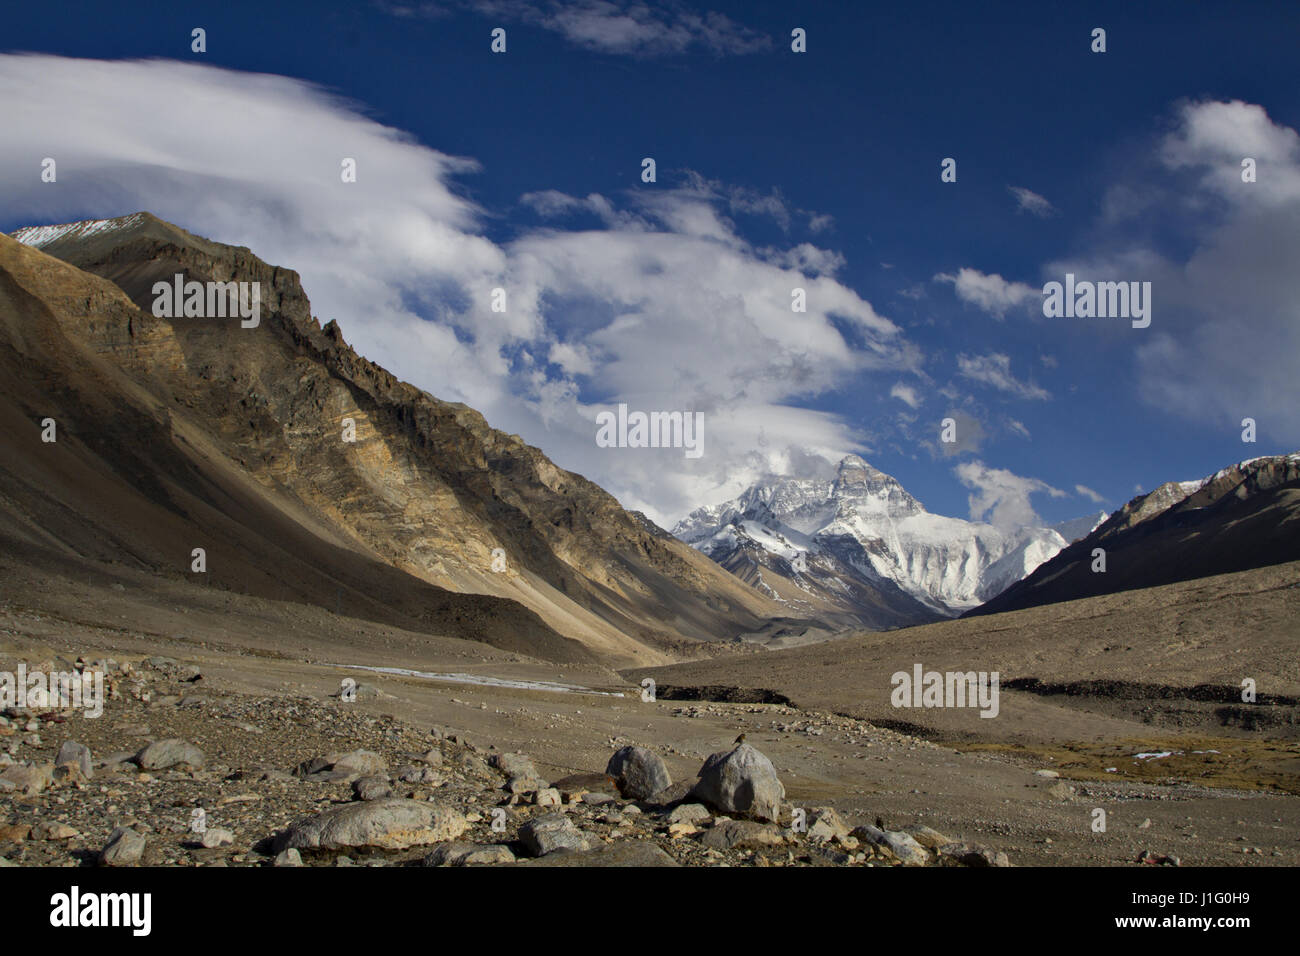 Mount Everest, the tallest mountain in the world and part of the Himalayan Mountain Range, as viewed from the Rongbuk - Stock Image